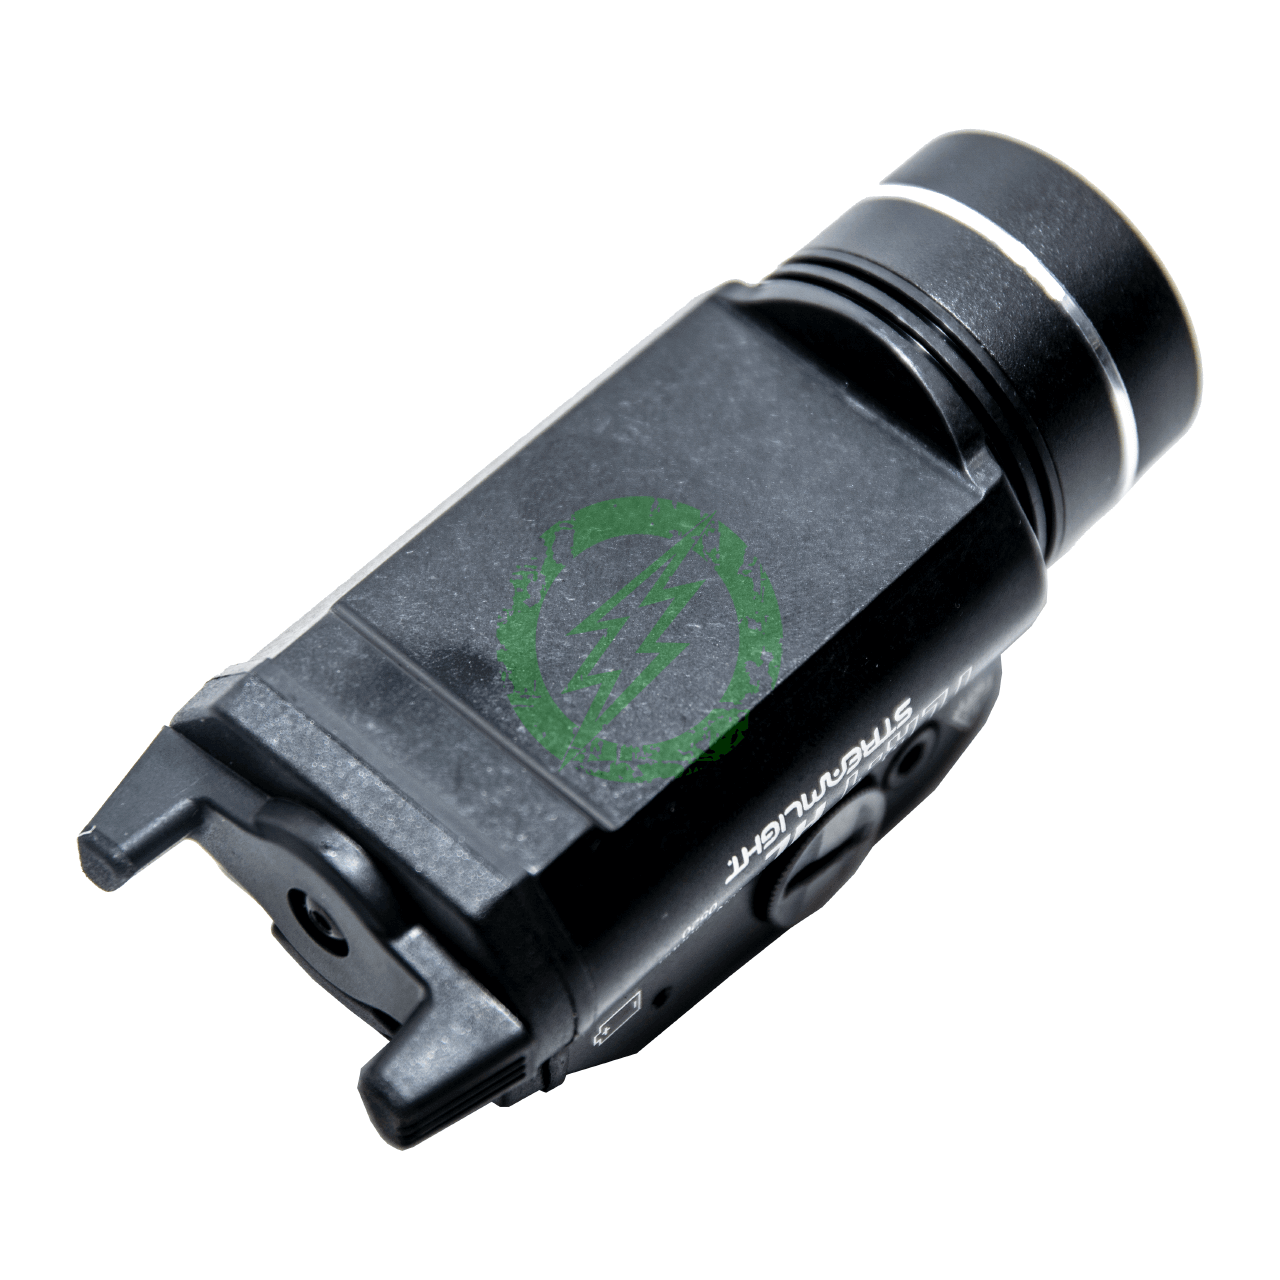 Streamlight TLR-1 HL | Black Super Bright 1000 Lumen LED Weapon Light bottom